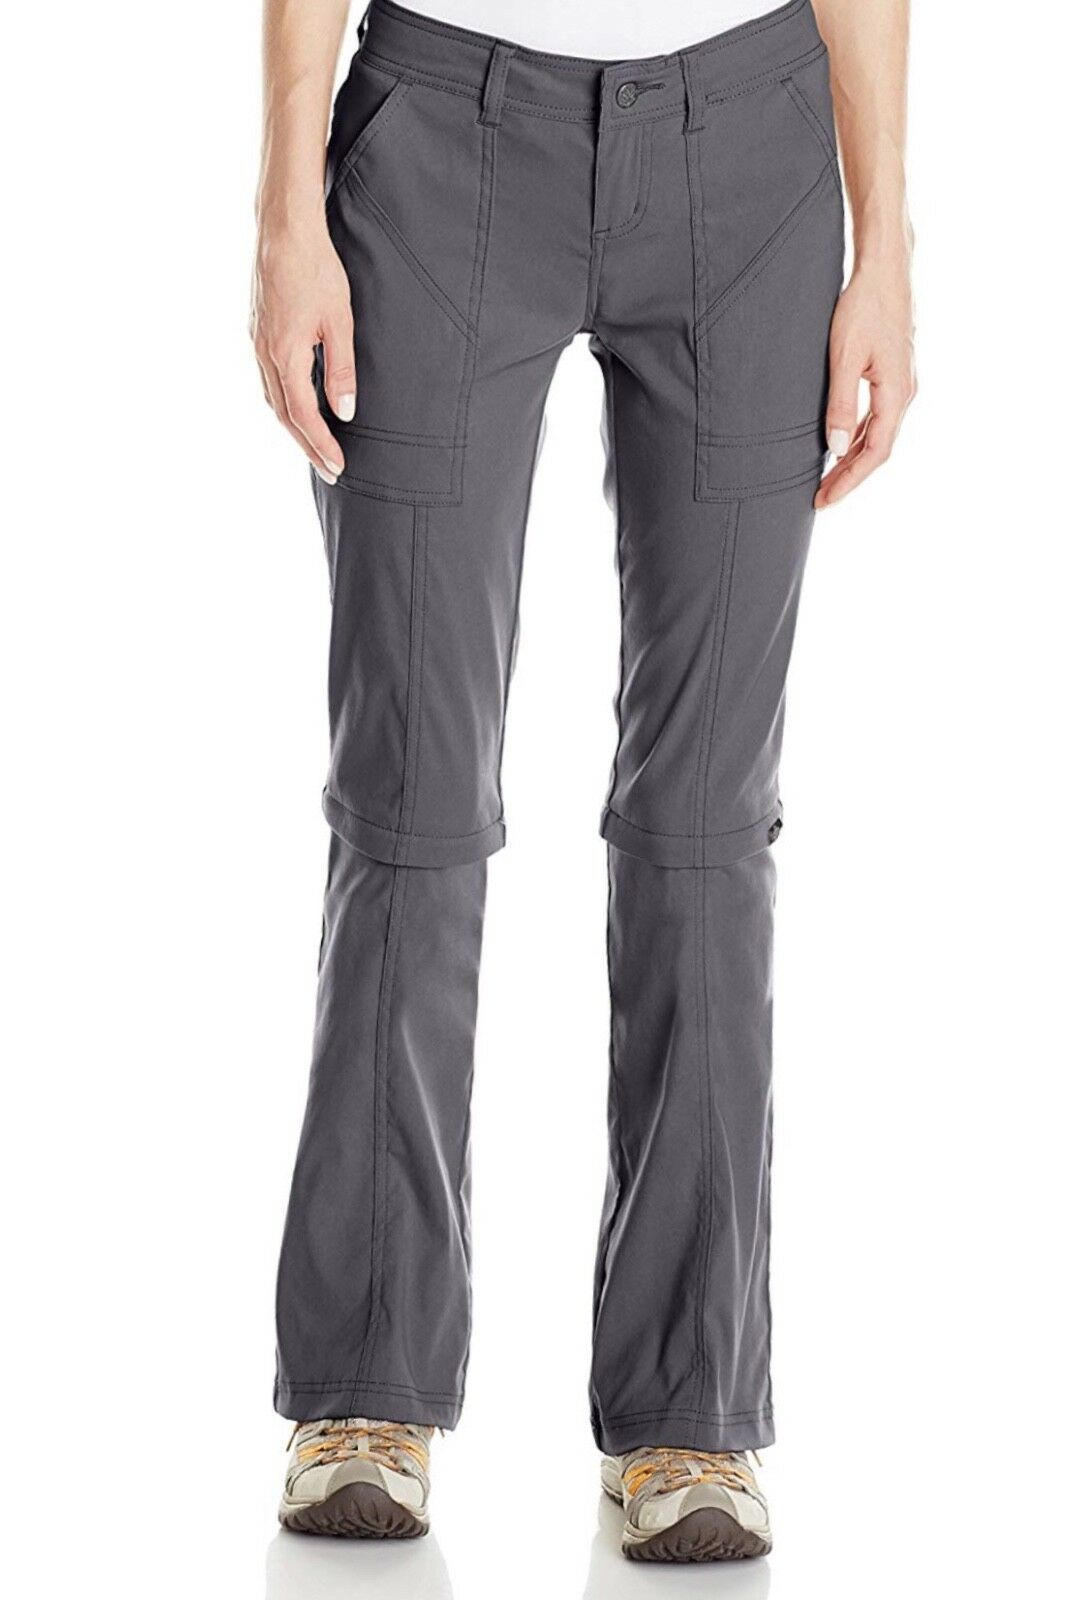 PrAna Women's Monarch Congreenible Pant - Size 10 (Regular) -Coal - Brand New